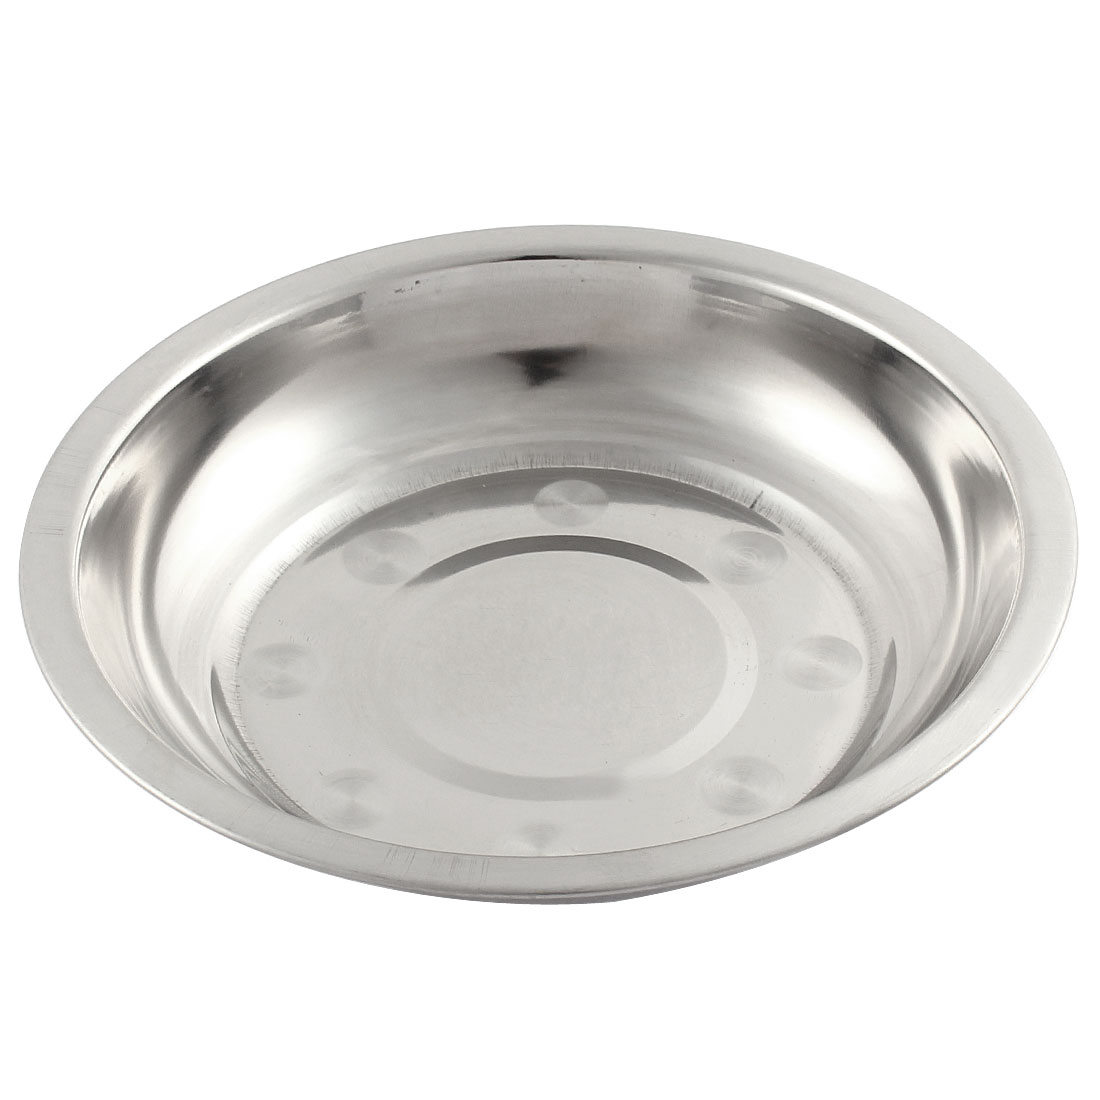 17cm x 3cm Round Silver Tone Stainless Steel Dinner Dish Plate Food Holder